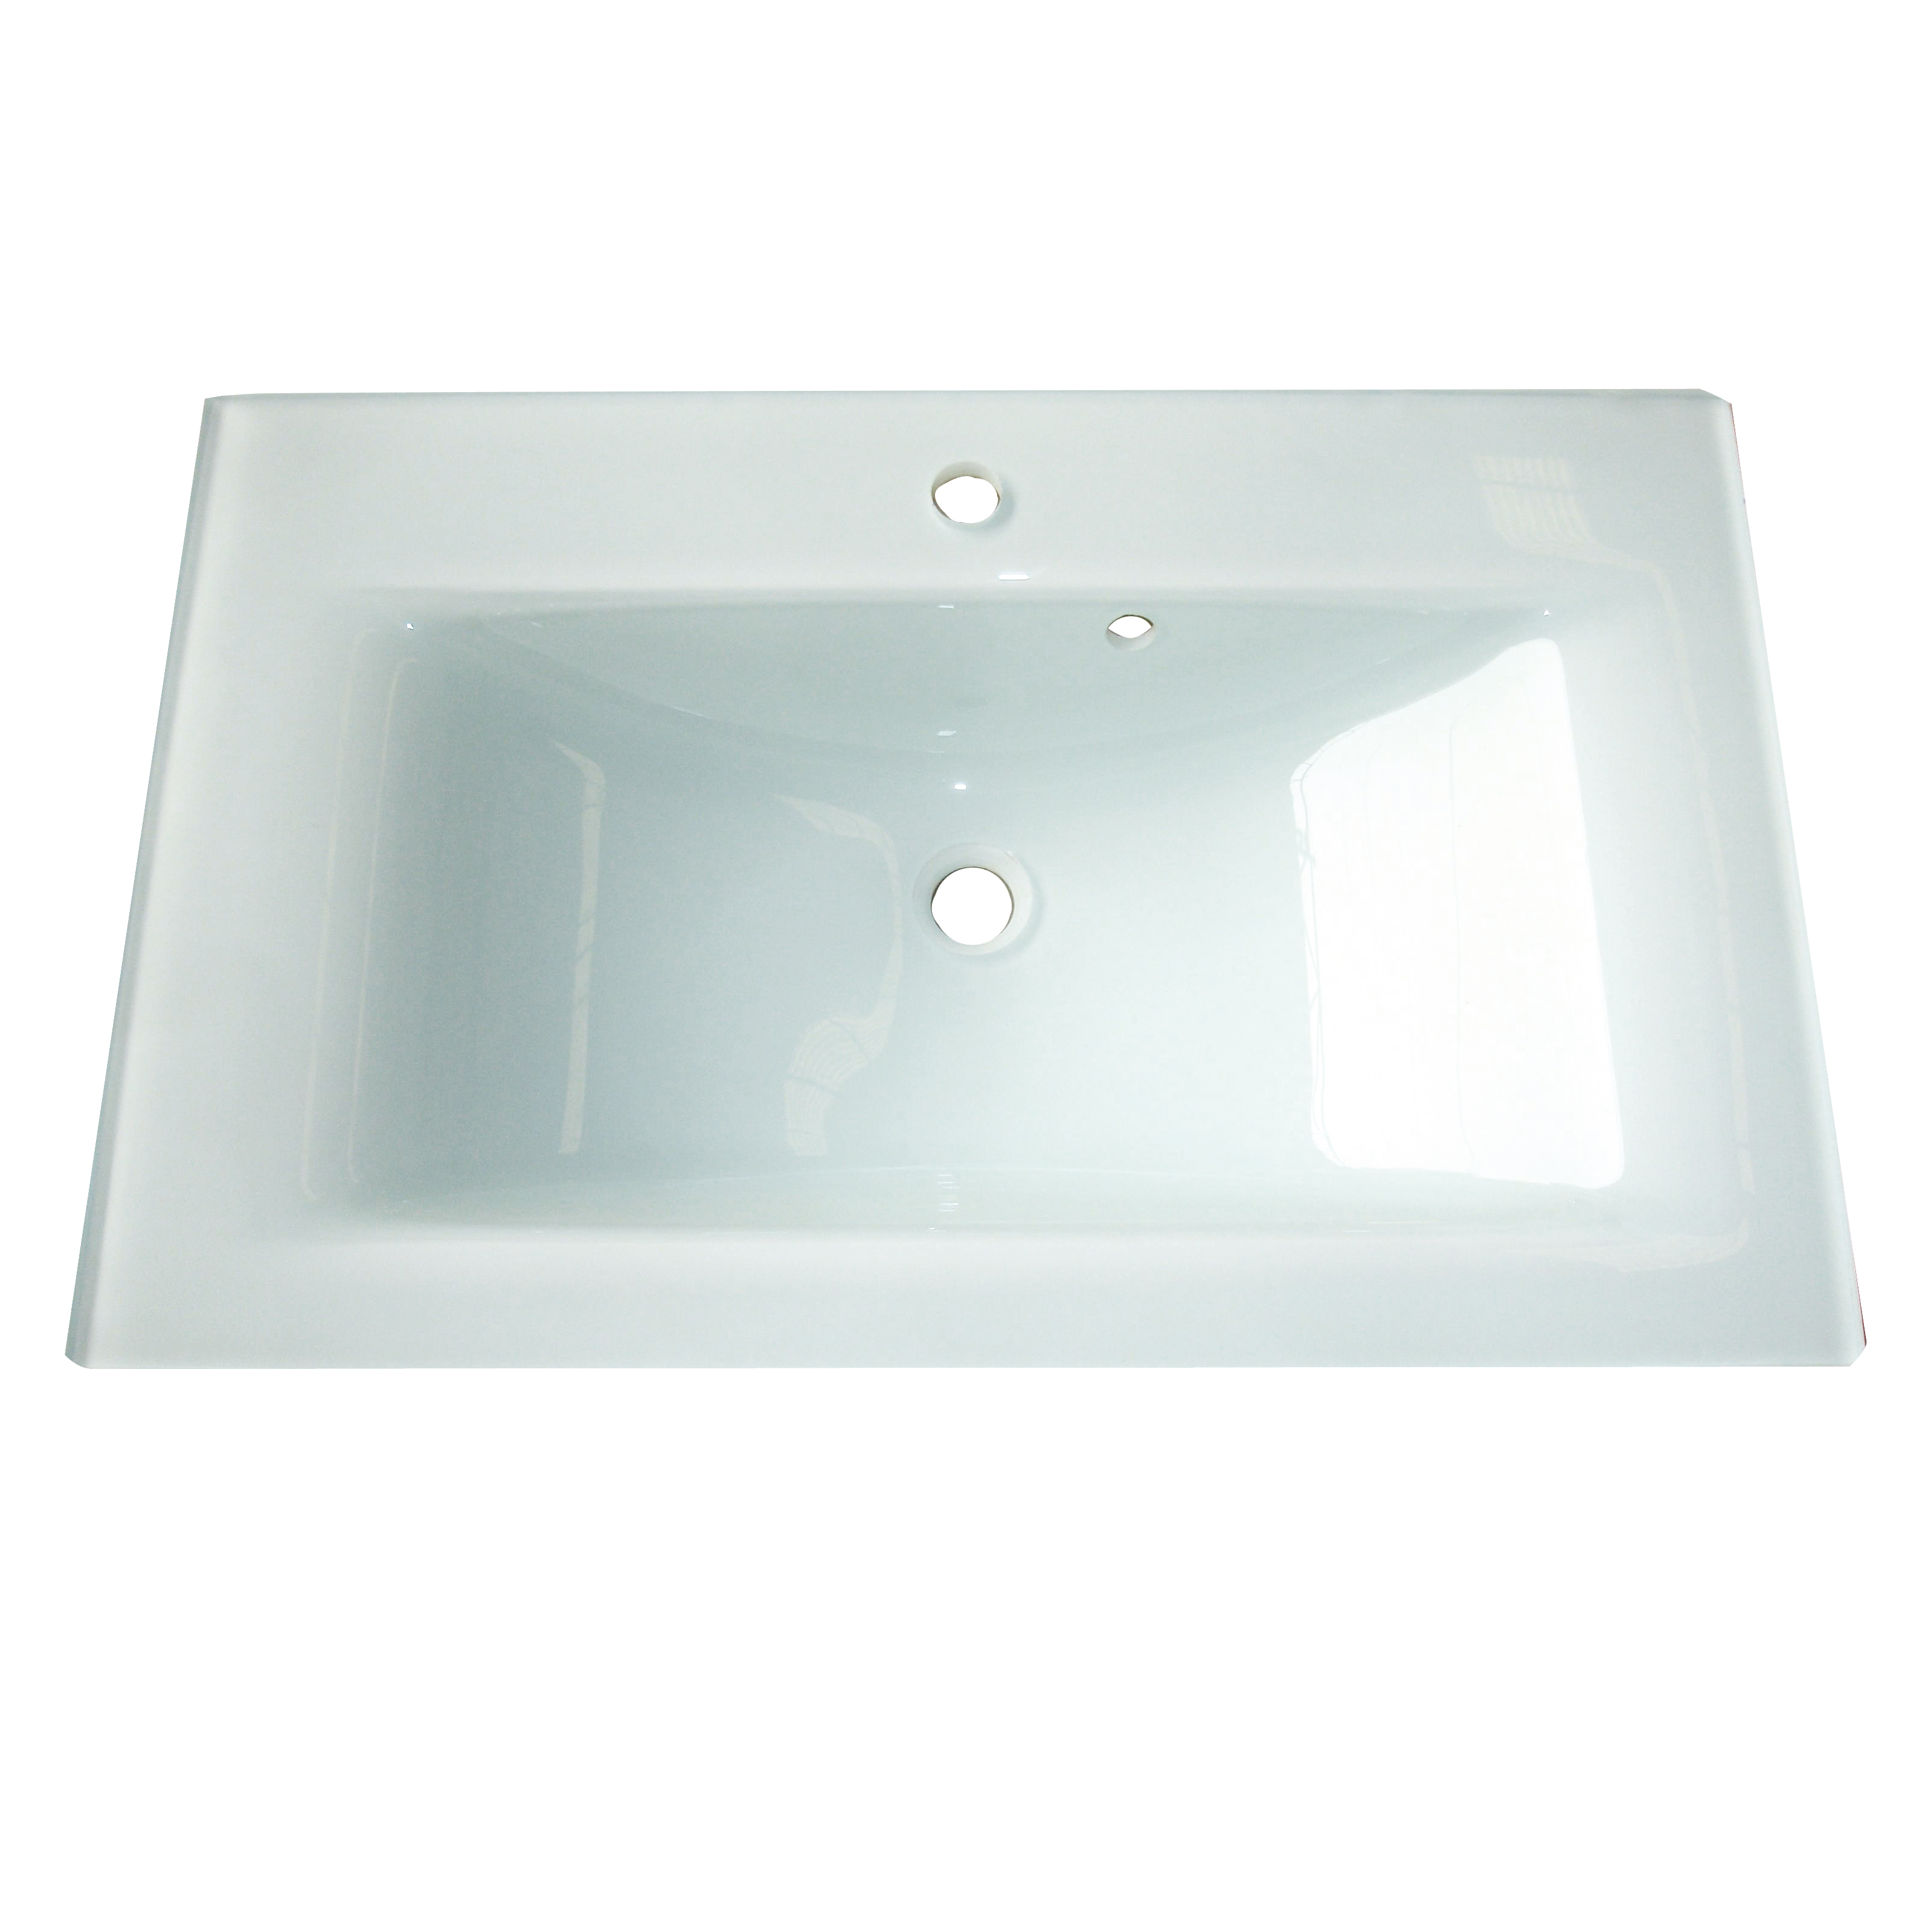 cheap counter top drop in mounting ceramic bathroom vanity basin sink buy painted ceramic bathroom sinks bathroom vanities and sinks cheap vanity top double sink product on alibaba com